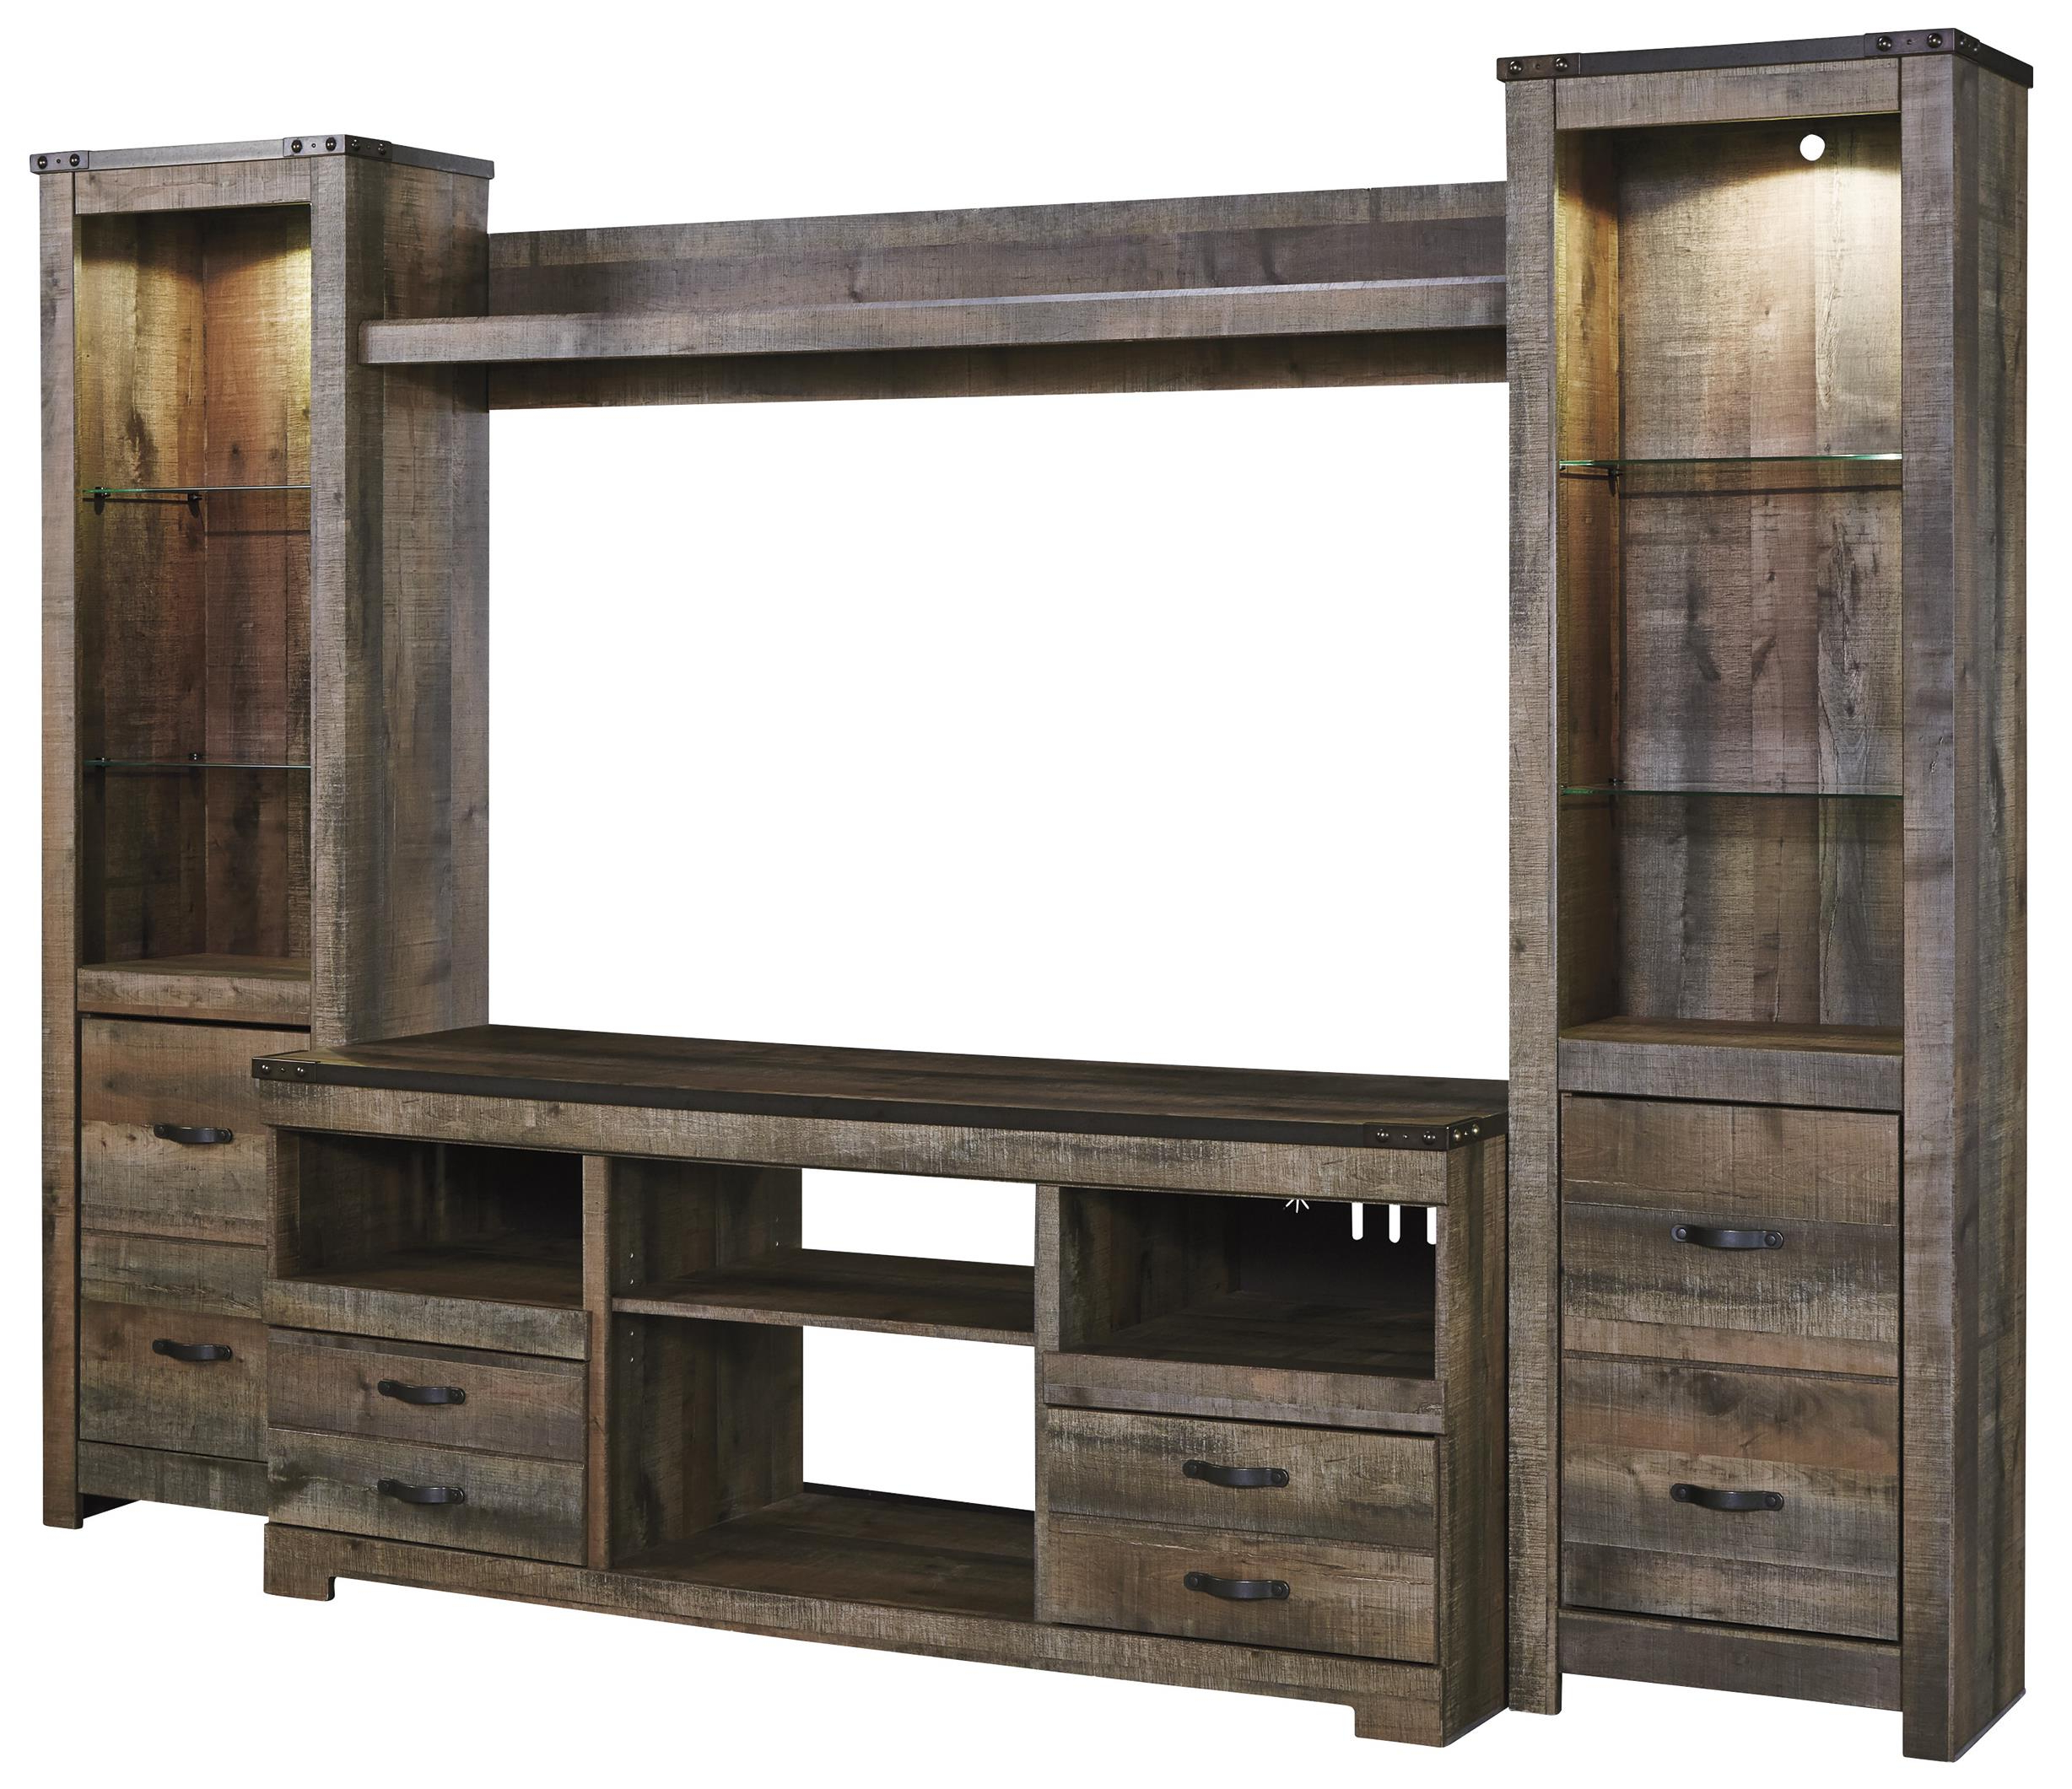 Current Urban Rustic Rustic Large Tv Stand & 2 Tall Piers W/ Bridge Regarding Rustic Furniture Tv Stands (View 4 of 20)